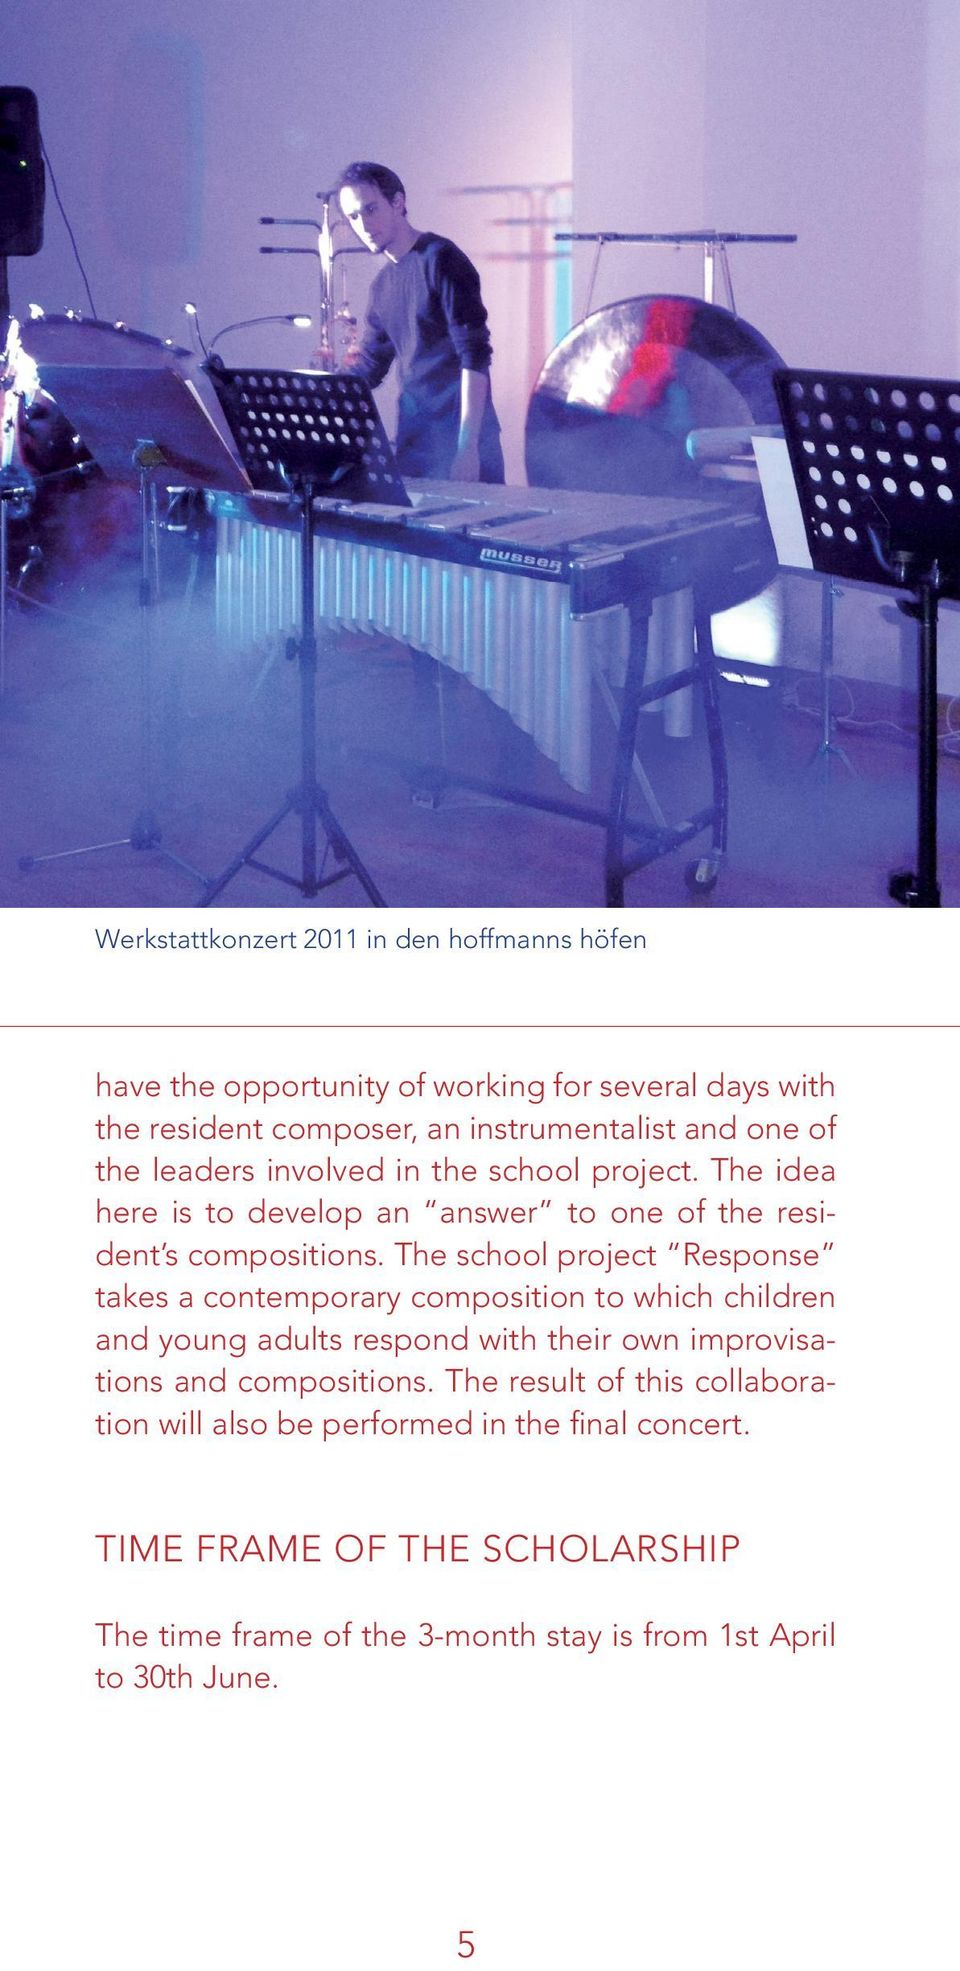 The school project Response takes a contemporary composition to which children and young adults respond with their own improvisations and compositions.